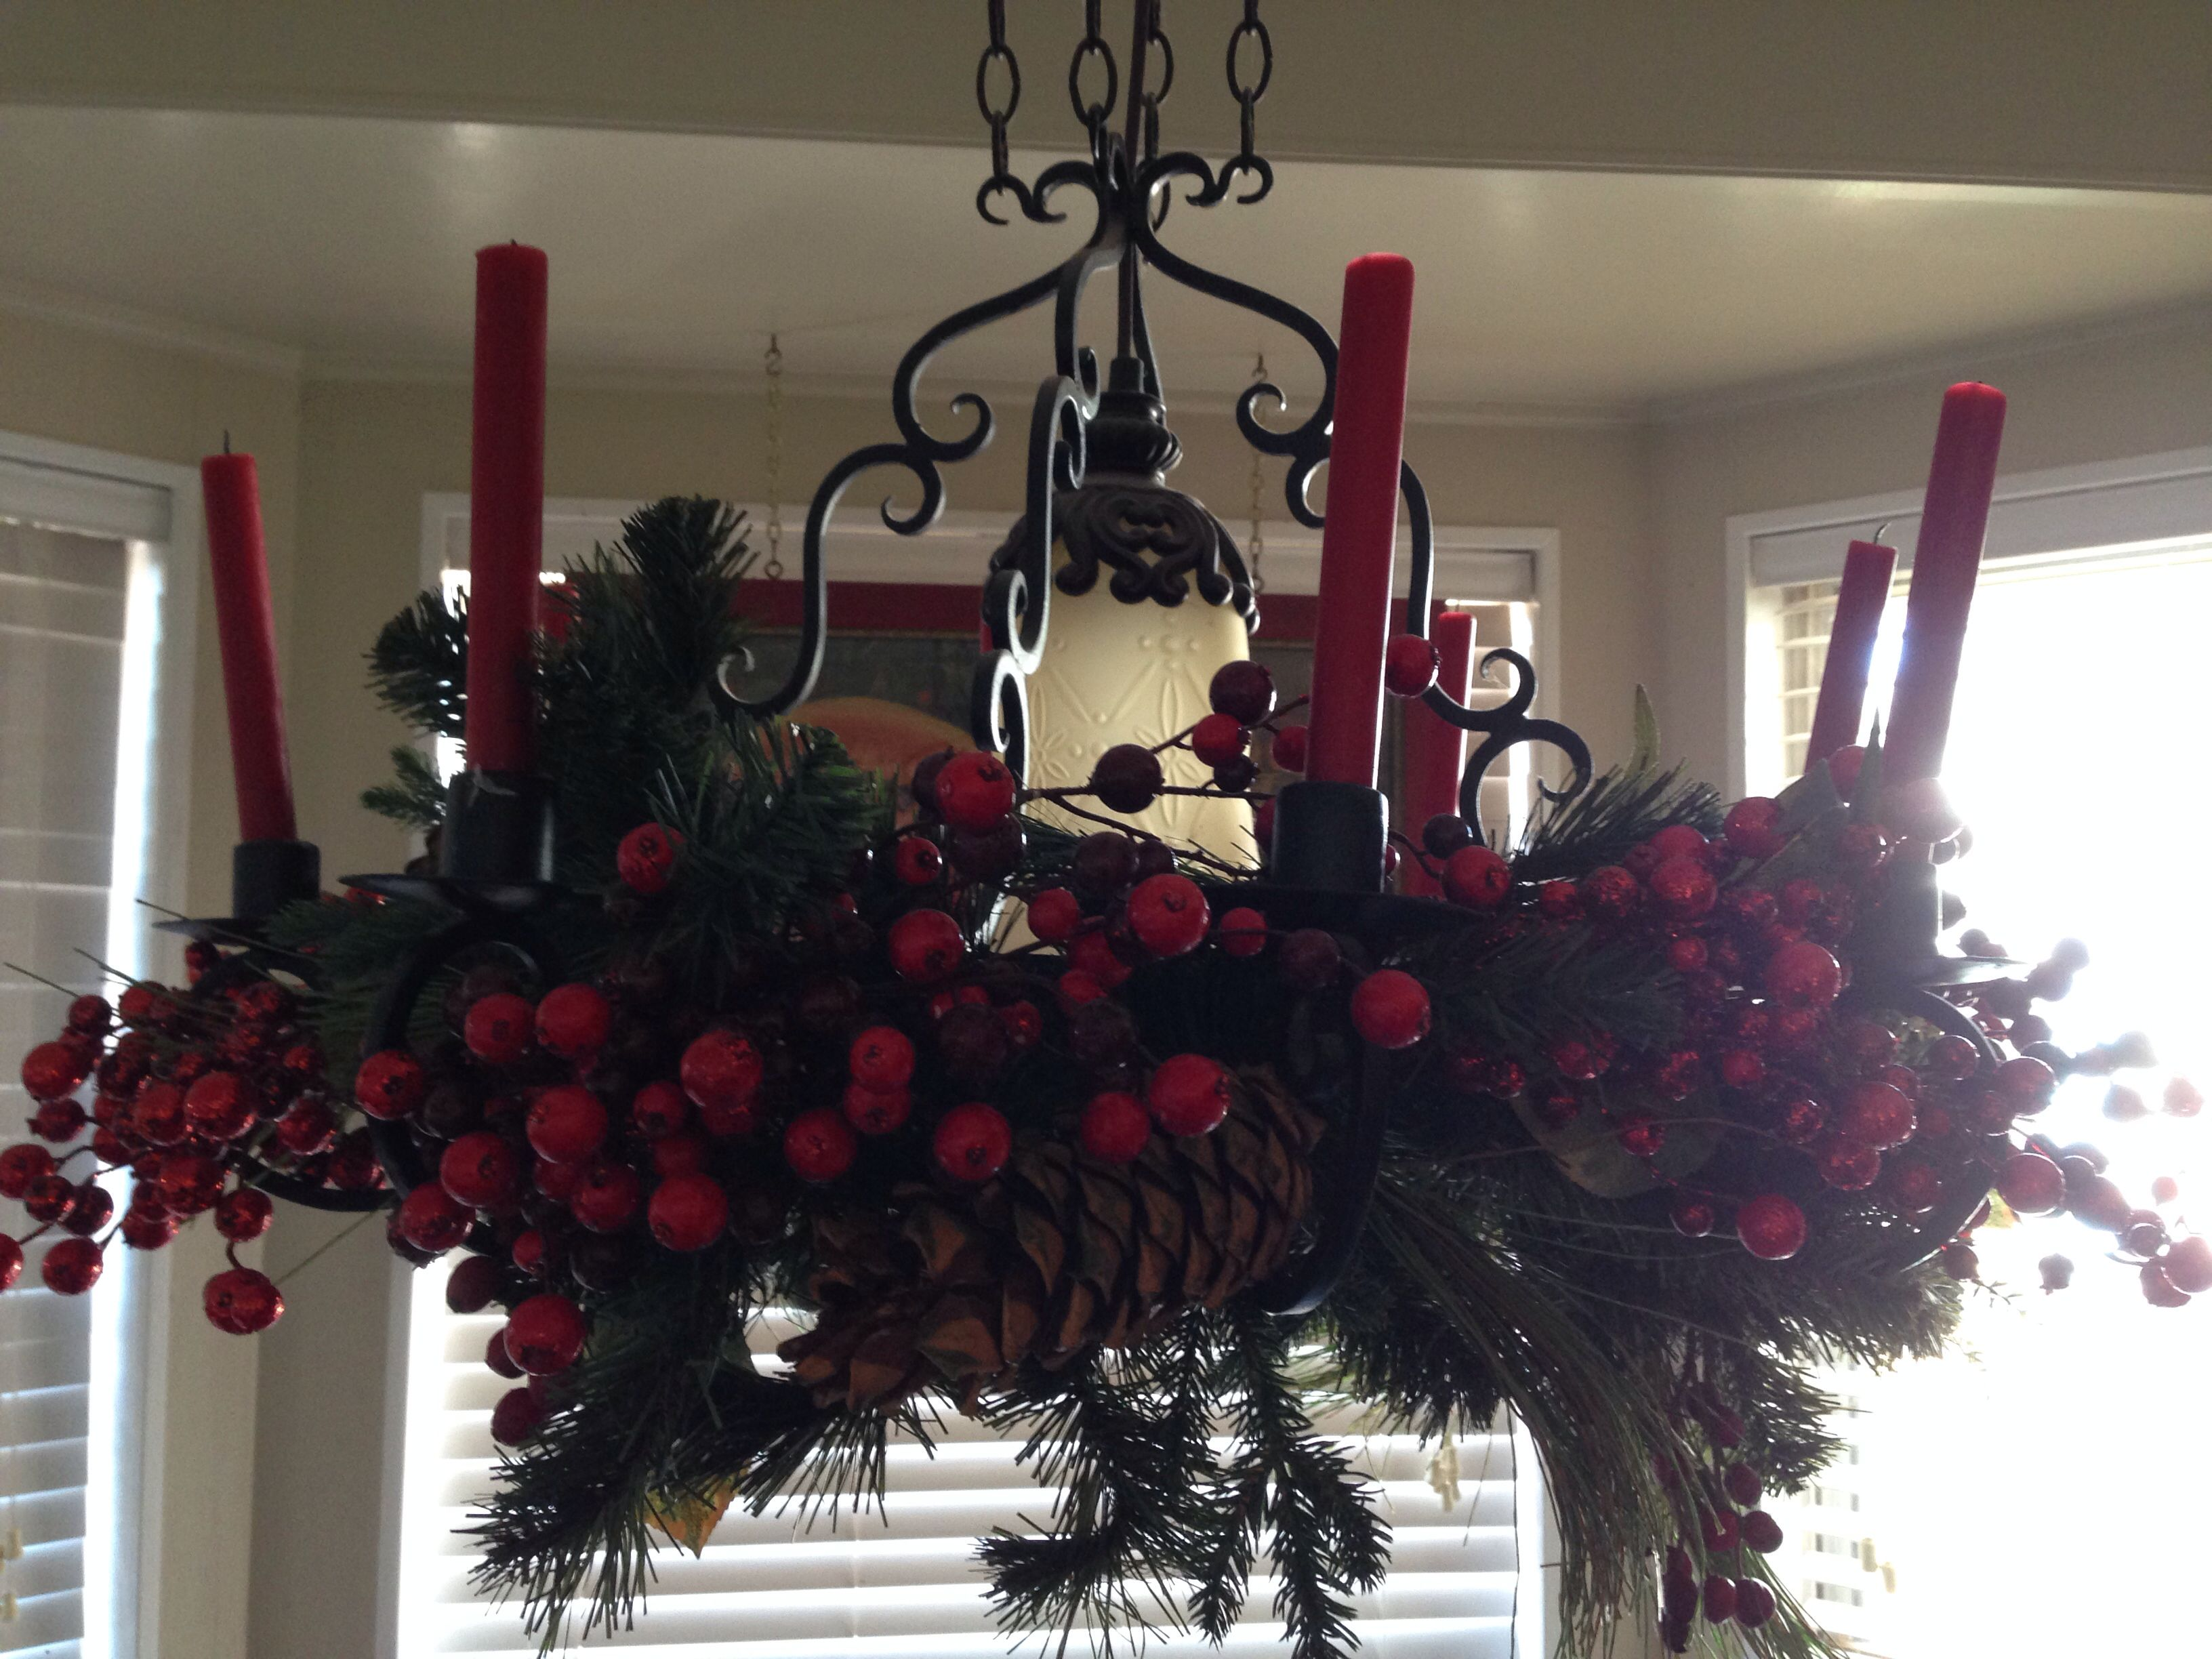 Kitchen chandelier with greenery and berries